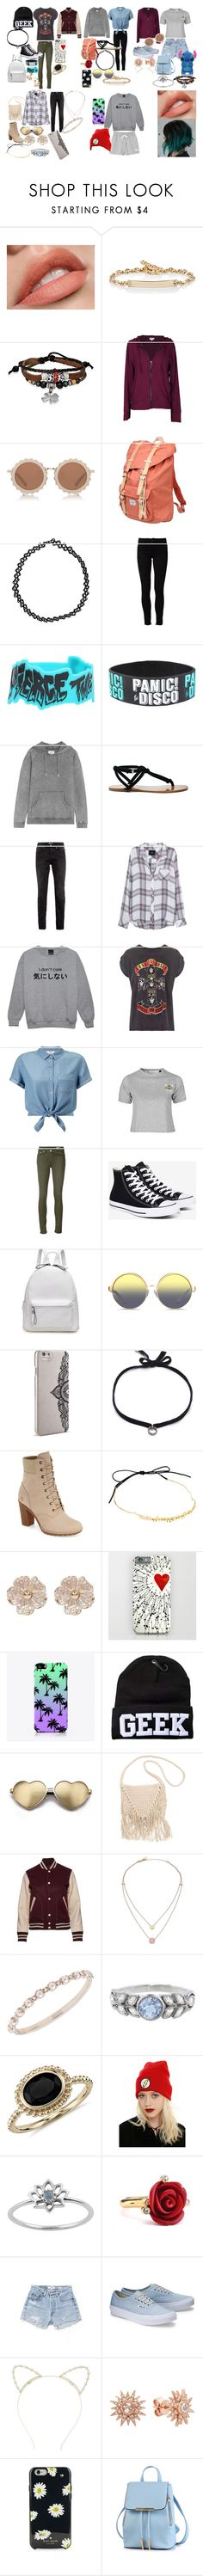 """""""Tyler's Wardrobe"""" by majesticnarwhal on Polyvore featuring Hoorsenbuhs, Bling Jewelry, Velvet by Graham & Spencer, House of Holland, Herschel Supply Co., Boohoo, Frame Denim, Zoe Karssen, Sole Society and Topman"""